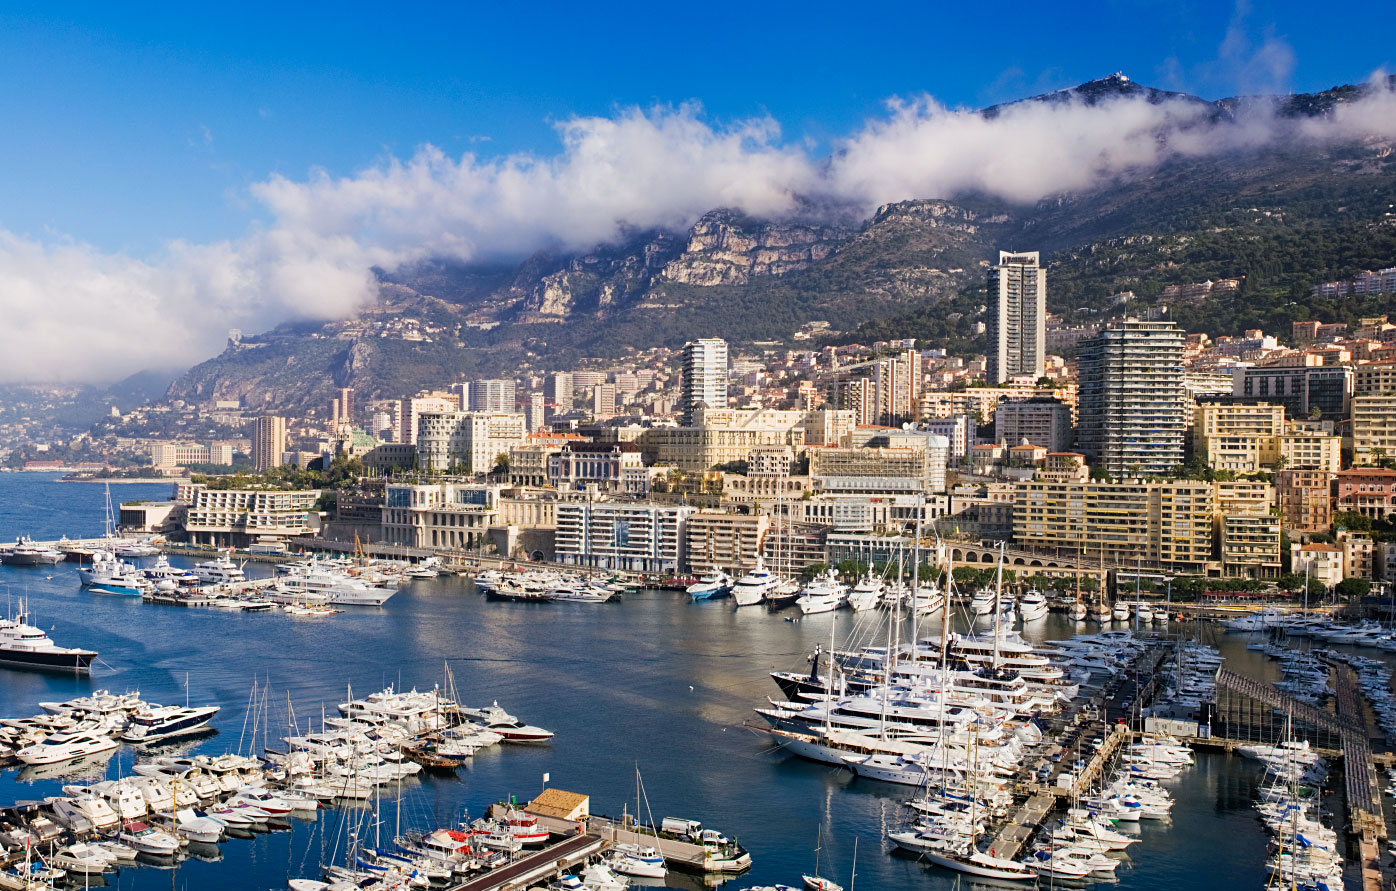 Monaco Symposium On Luxury hears how changing tastes and habits are keeping the world's most exclusive brands on their toes